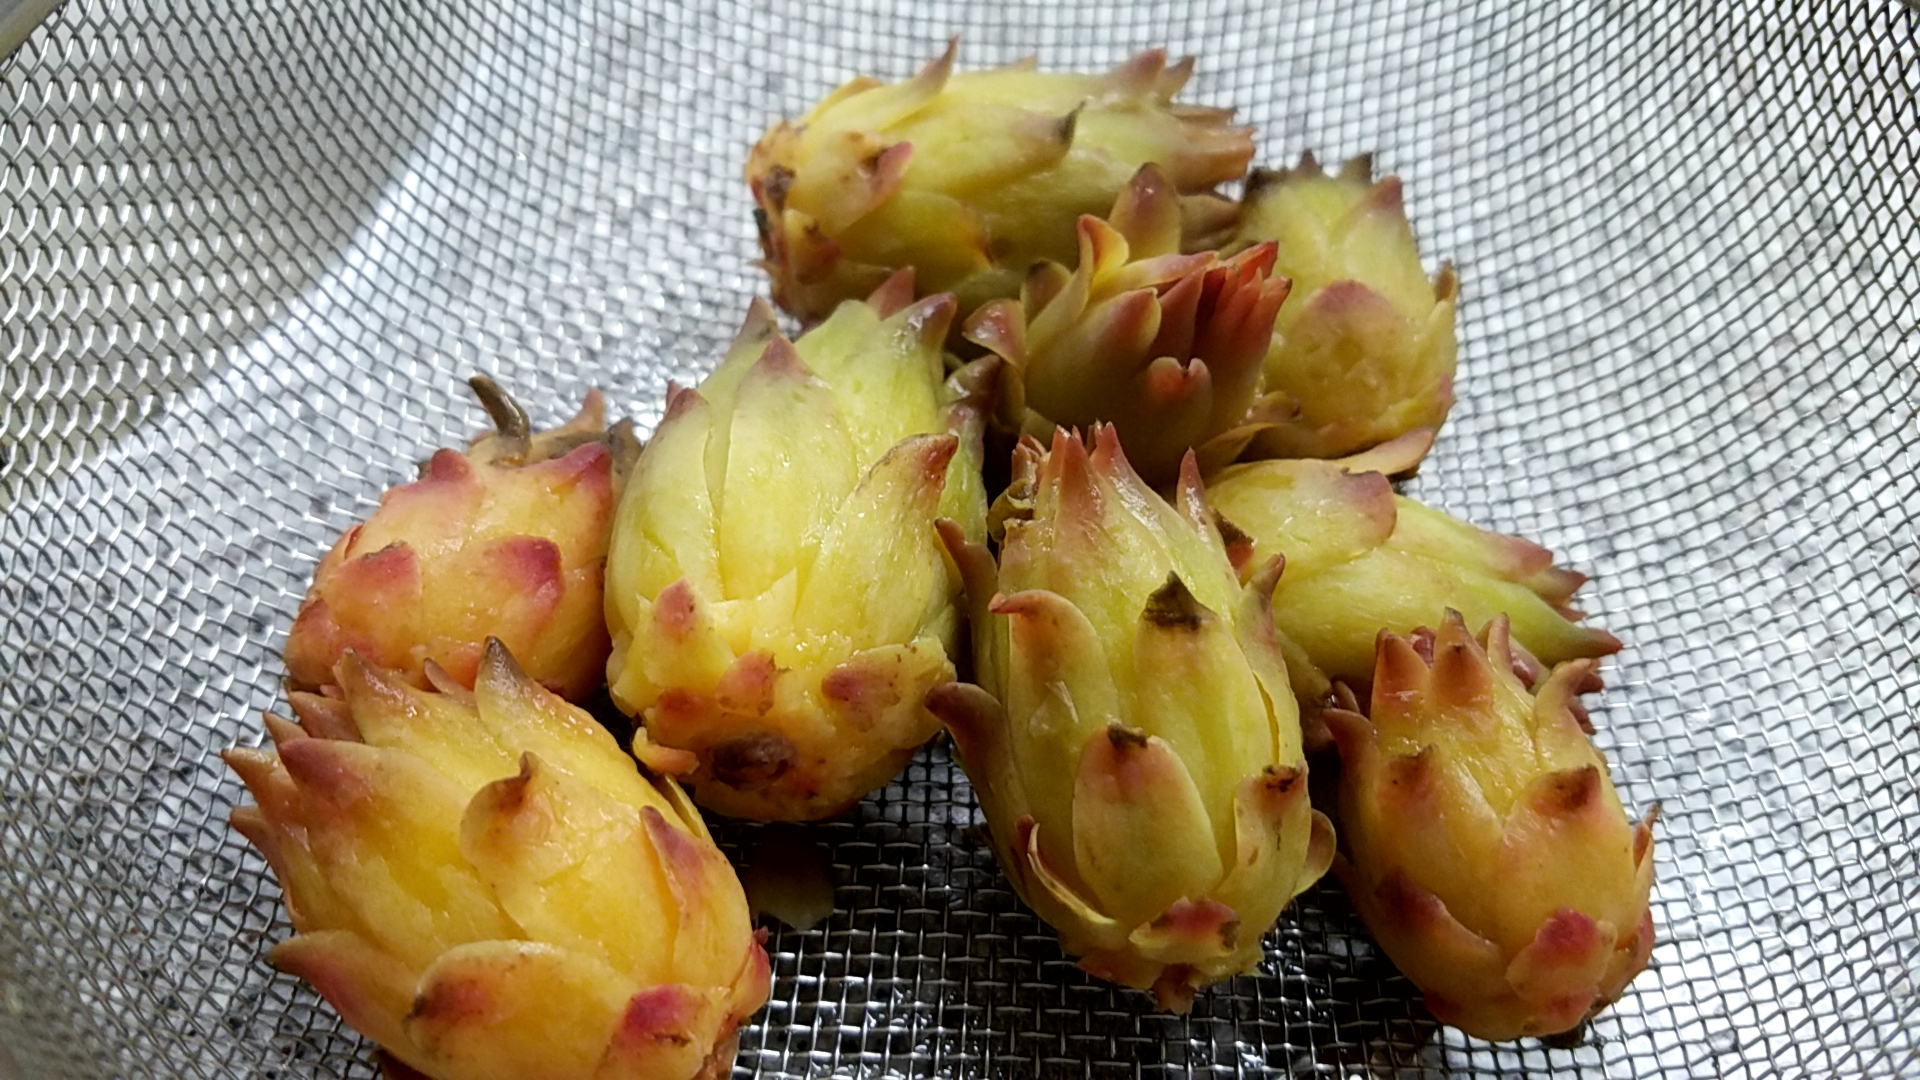 Buds of dragon fruit